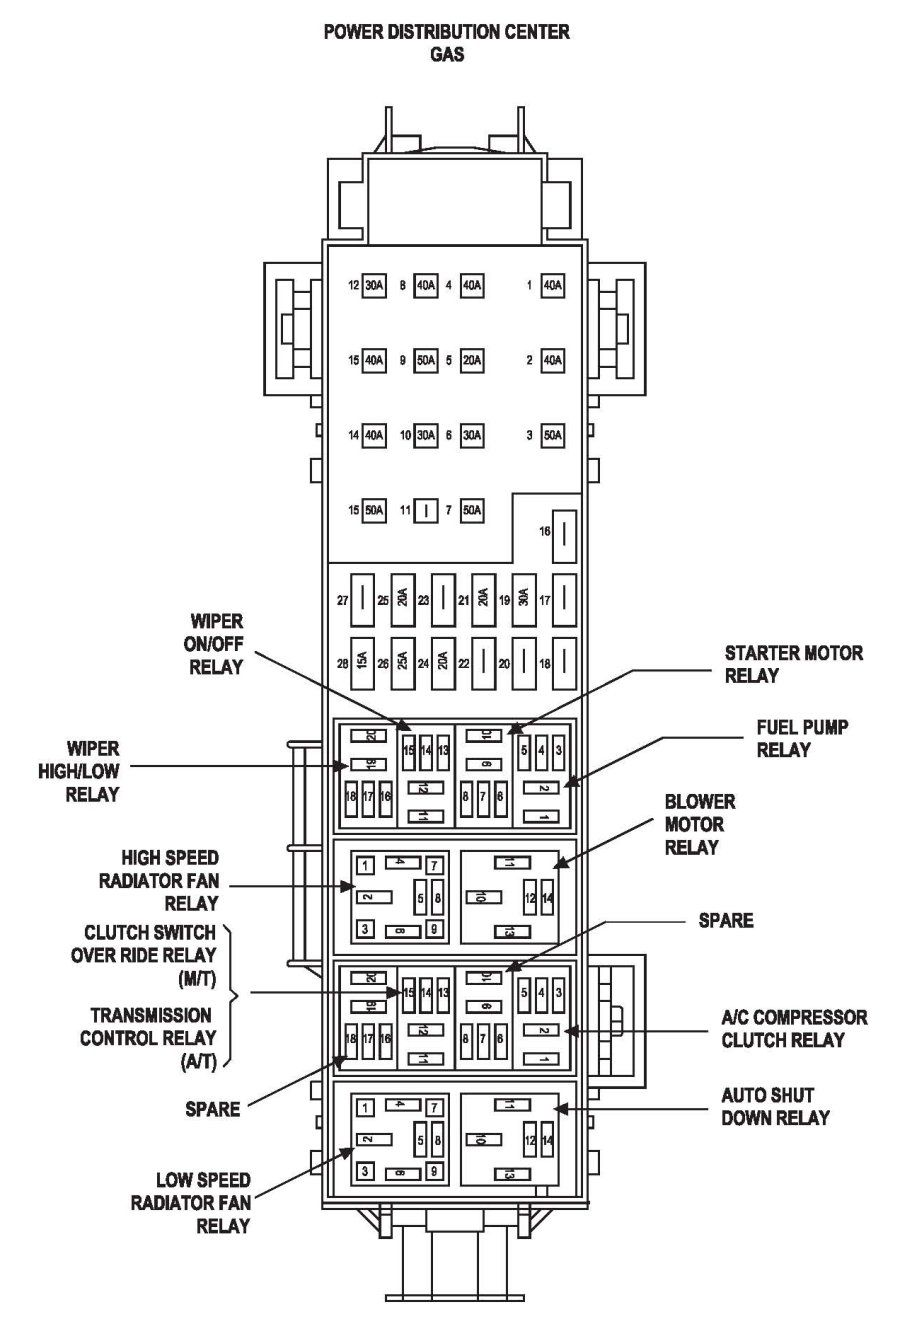 b3536c3739783eb19f827744cc42c3c4 jeep liberty fuse box diagram image details jeep liberty 2008 jeep commander fuse box layout at crackthecode.co